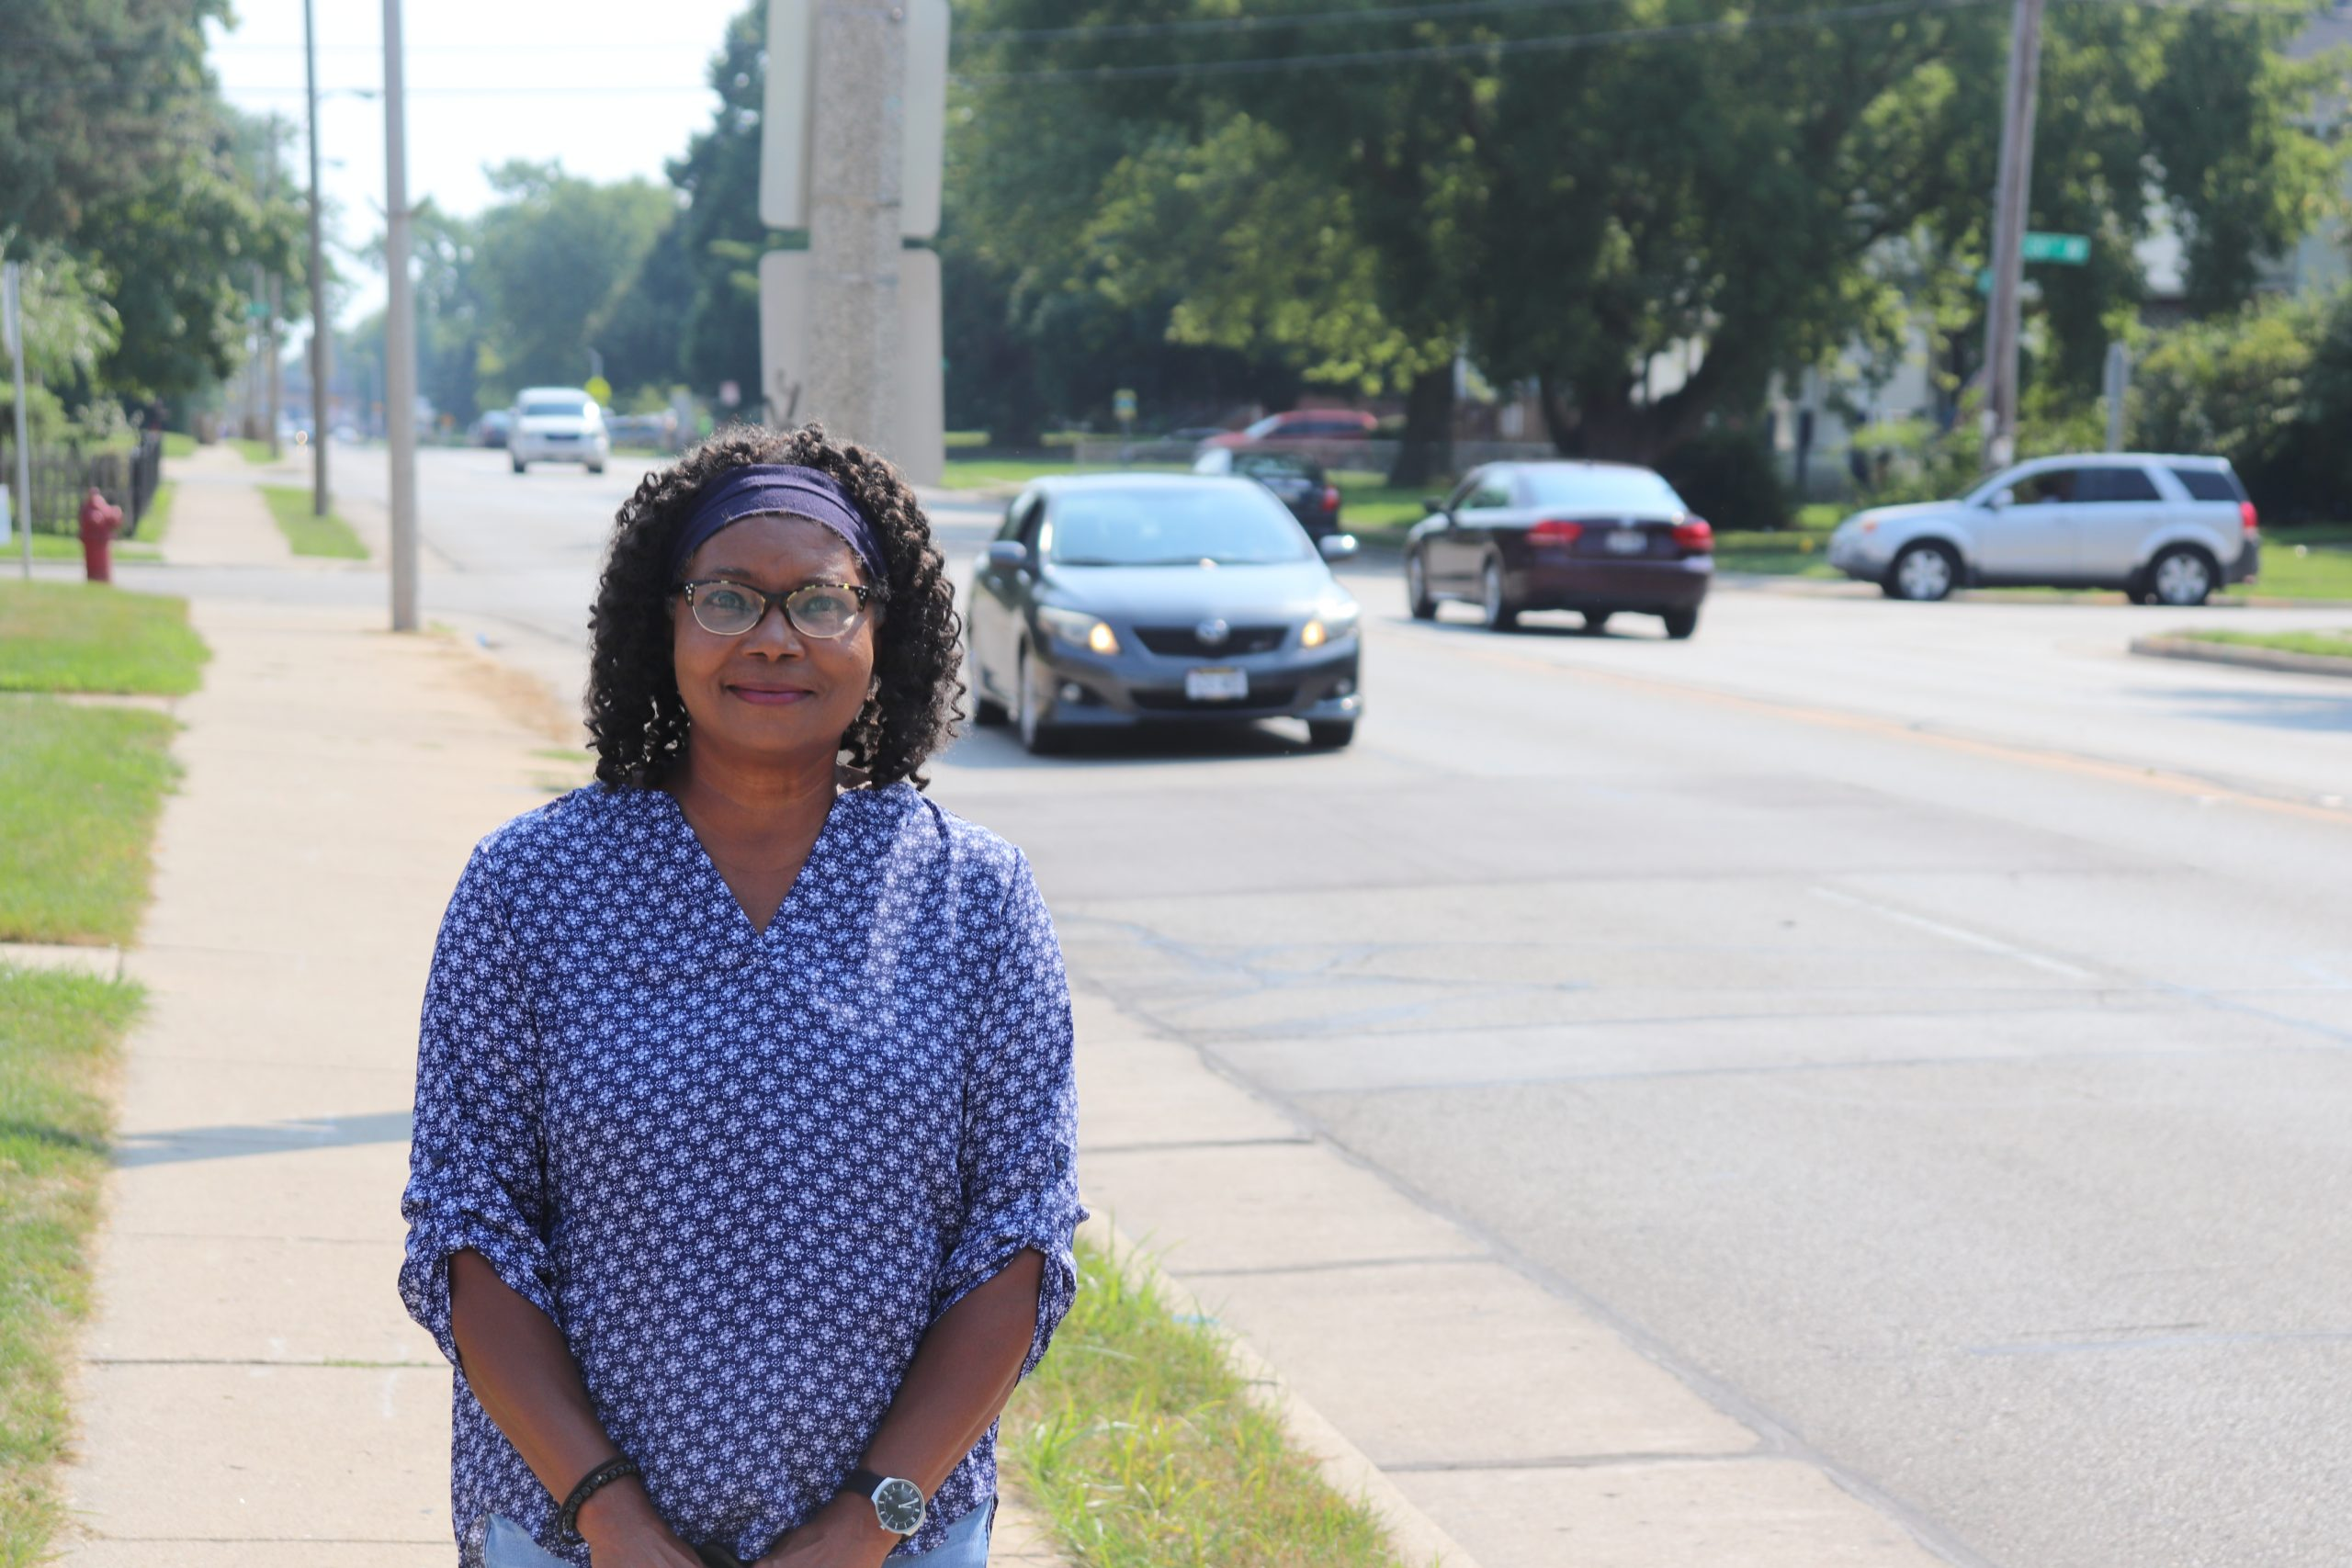 Adelene Greene stands at the intersection of 60th street and 20th avenue in Kenosha on Wednesday, August, 26, 2020.